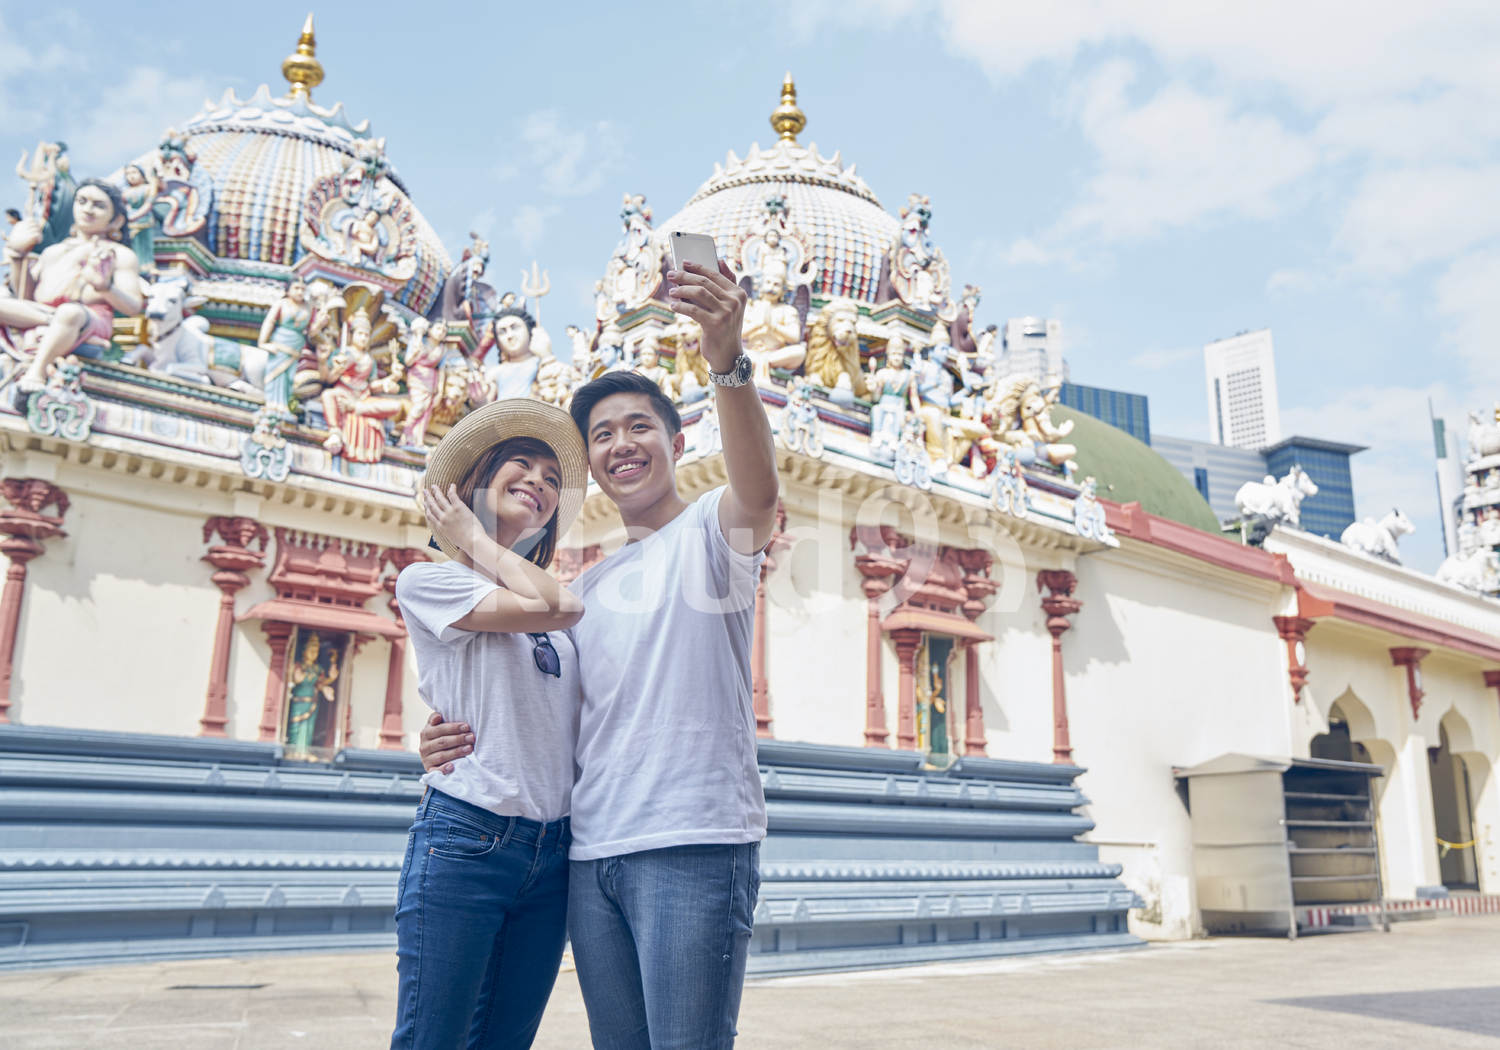 Cheerful tourists taking a selfie in Sri Mariamman Temple, Singapore